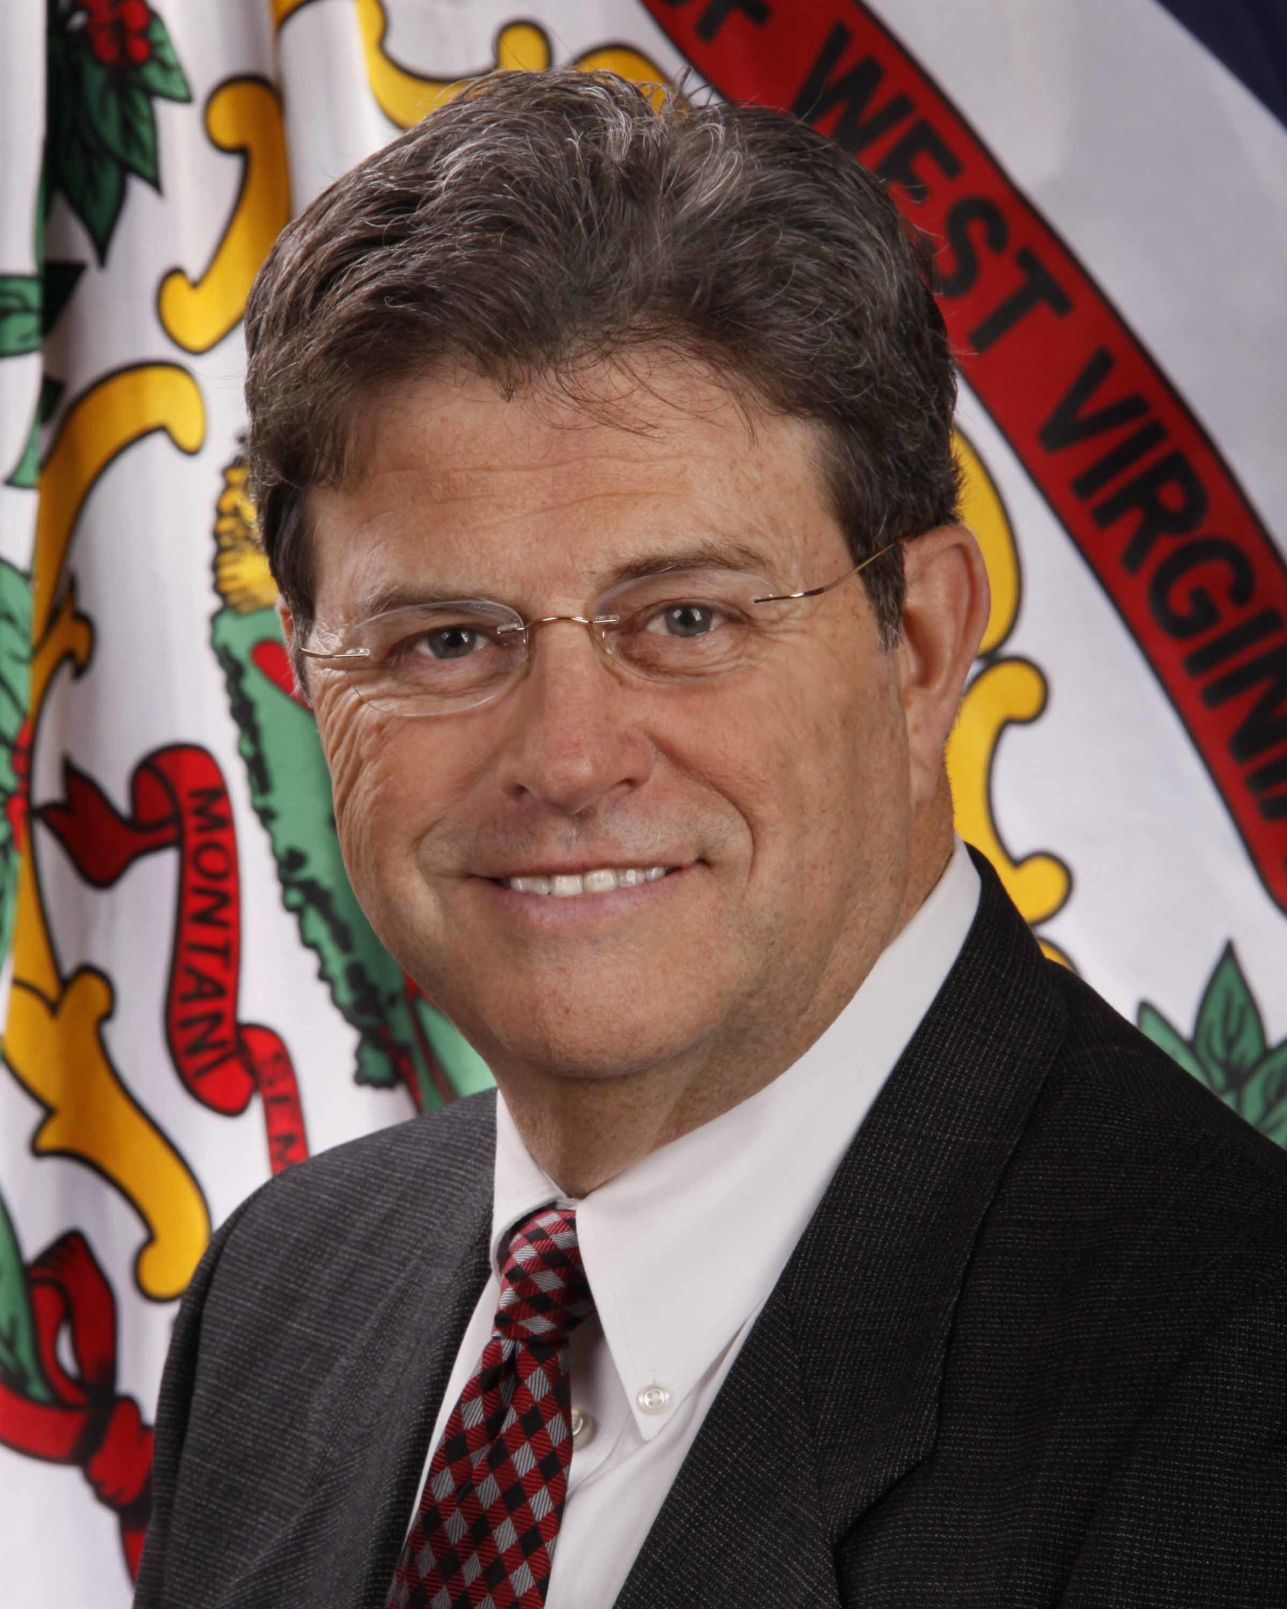 Thom Kirk, Department of Military Affairs and Public Safety